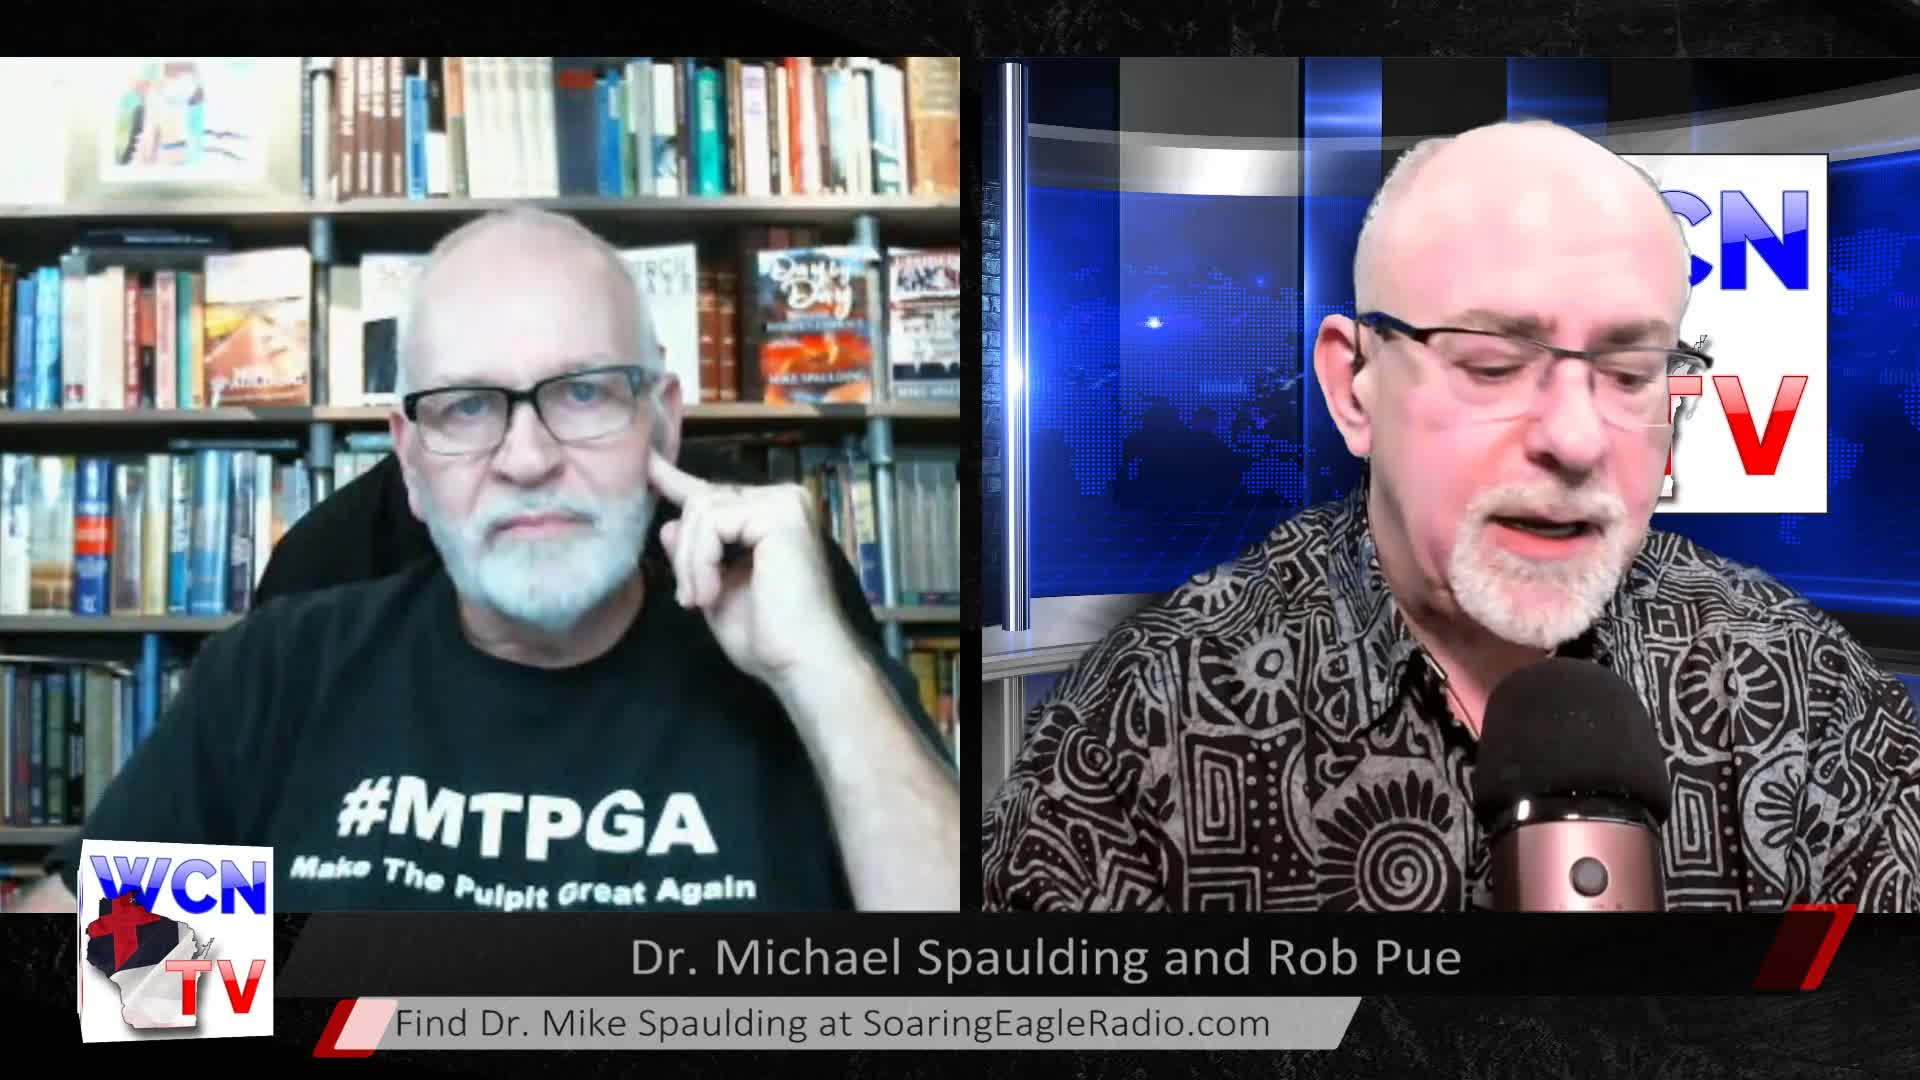 WCN-TV - November 25, 2020 - Rob Pue with Guest Dr. Mike Spaulding